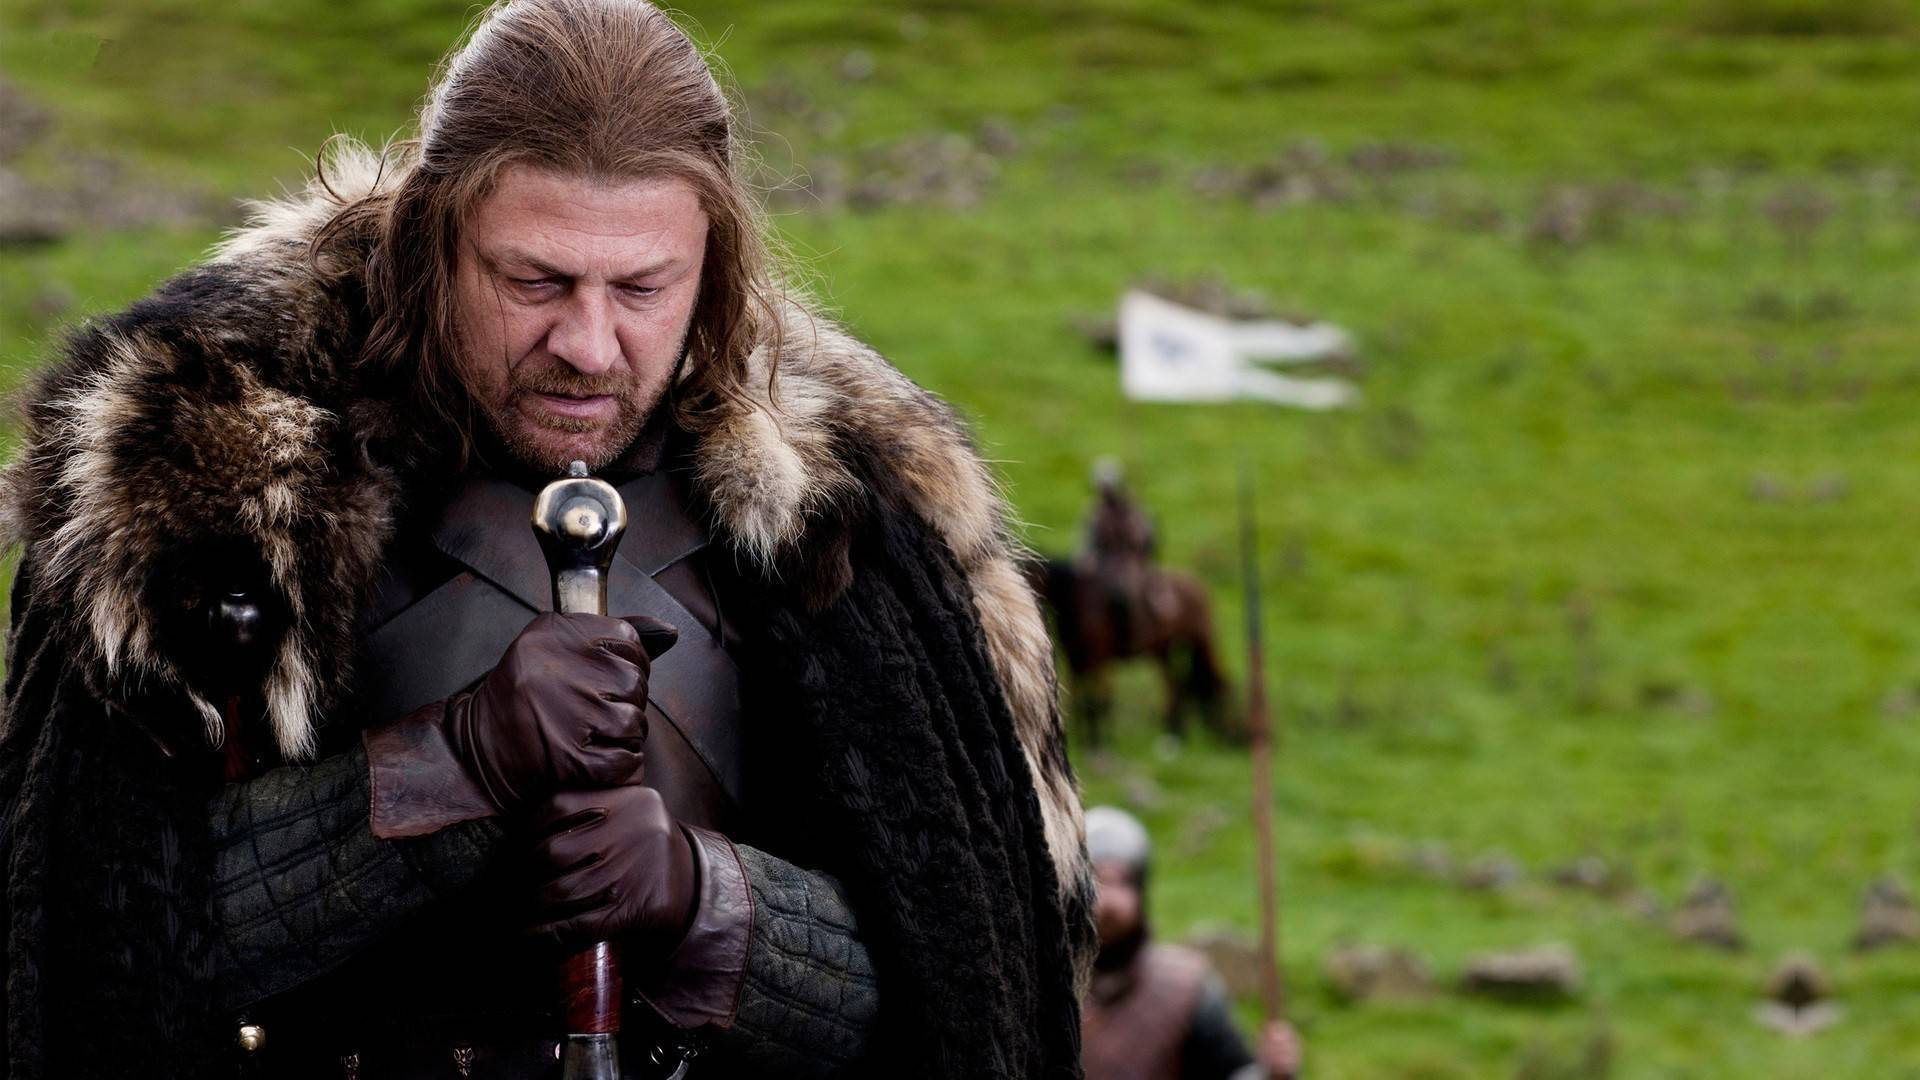 ned-stark-game-of-thrones-movie-hd-wallpaper-1920x1080-3872